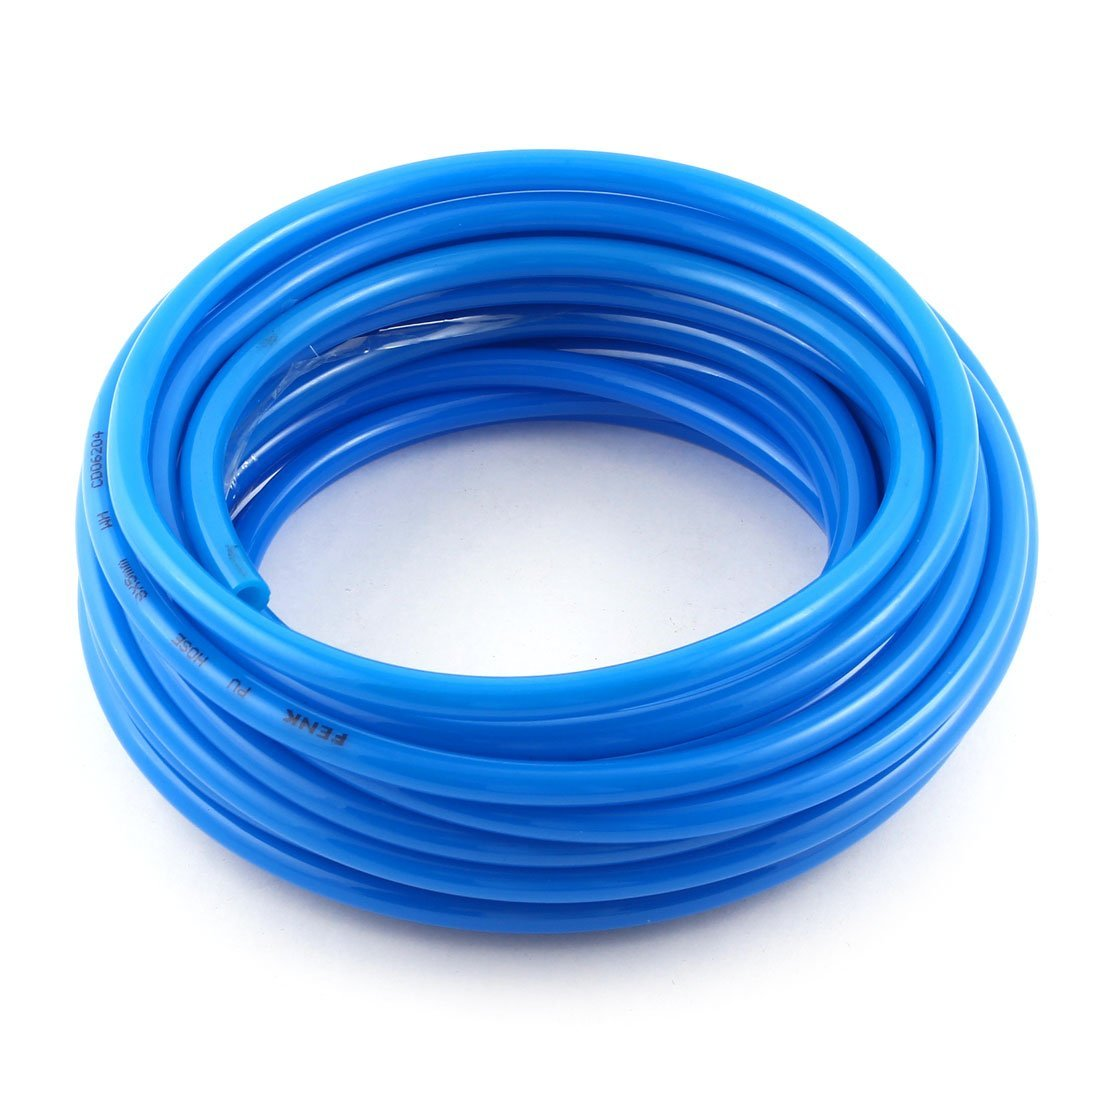 8mm(OD) x 5mm(ID) PU Air Tubing Pipe Hose 10 Meter Blue 10M free shipping high quality 5meter 4mm od pu tubing 2 5mm id blue color for pneumatics air hose tube